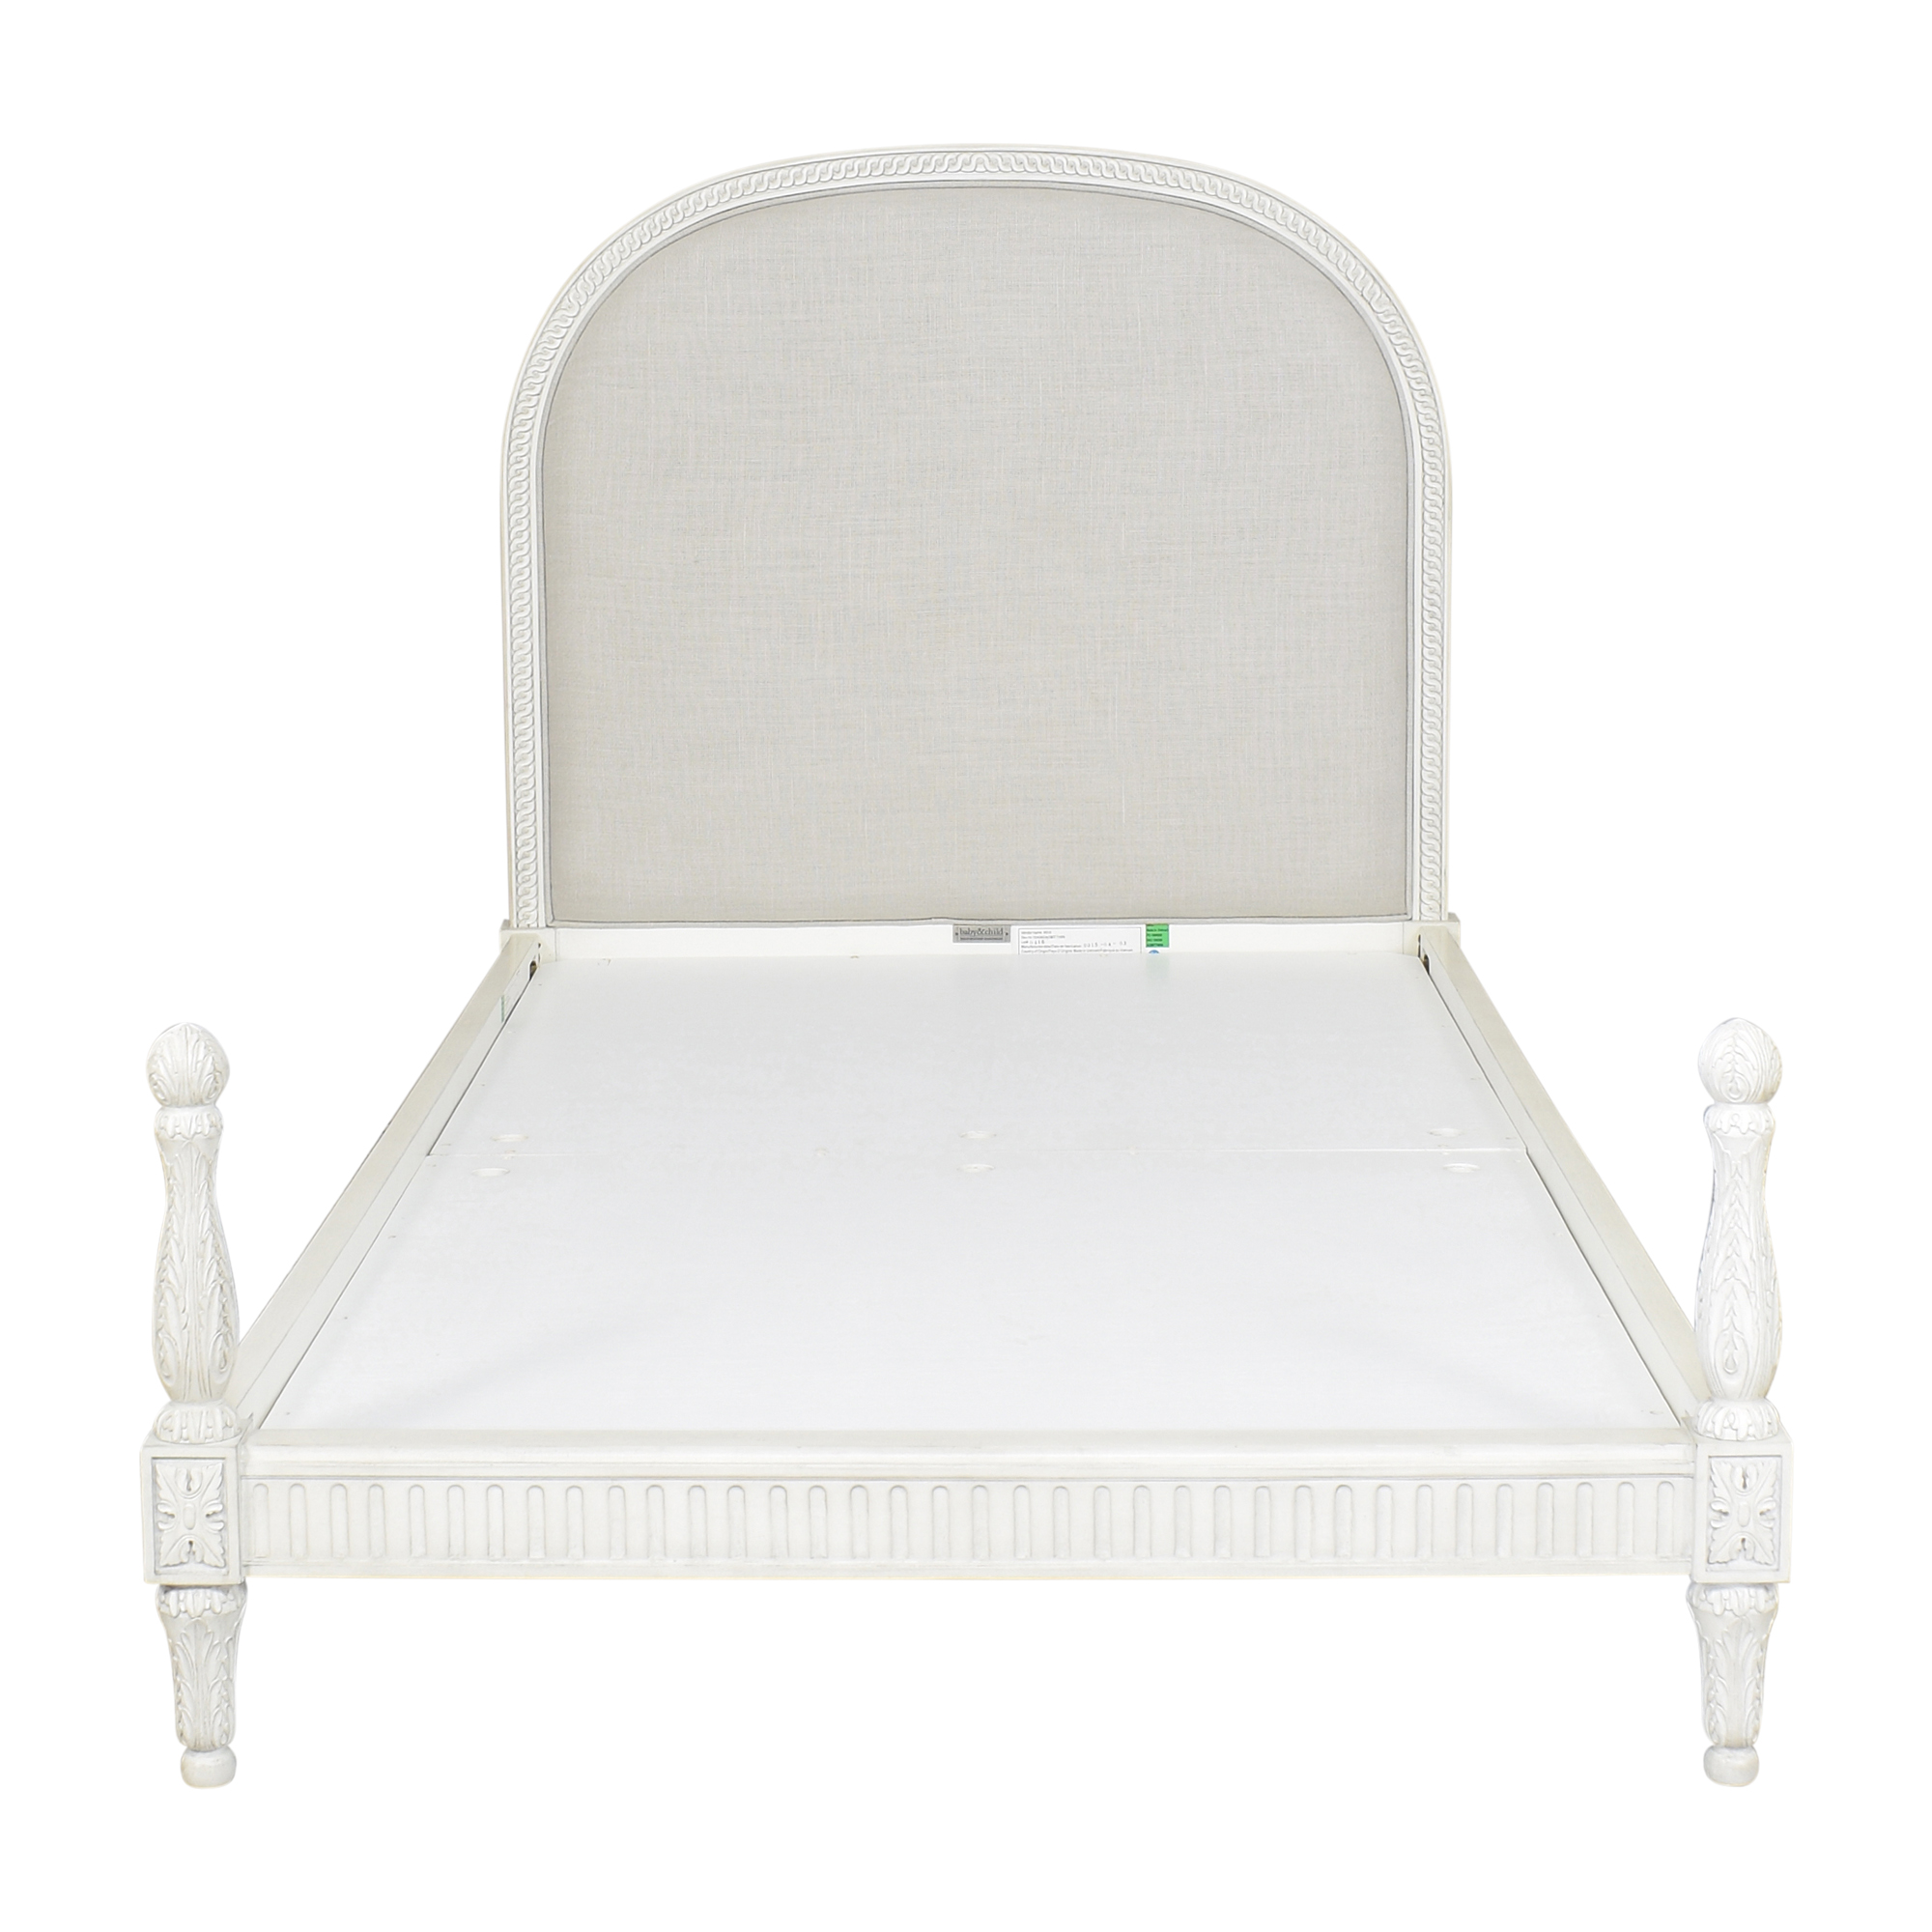 RH Baby & Child RH Baby & Child Upholstered Twin Bed price